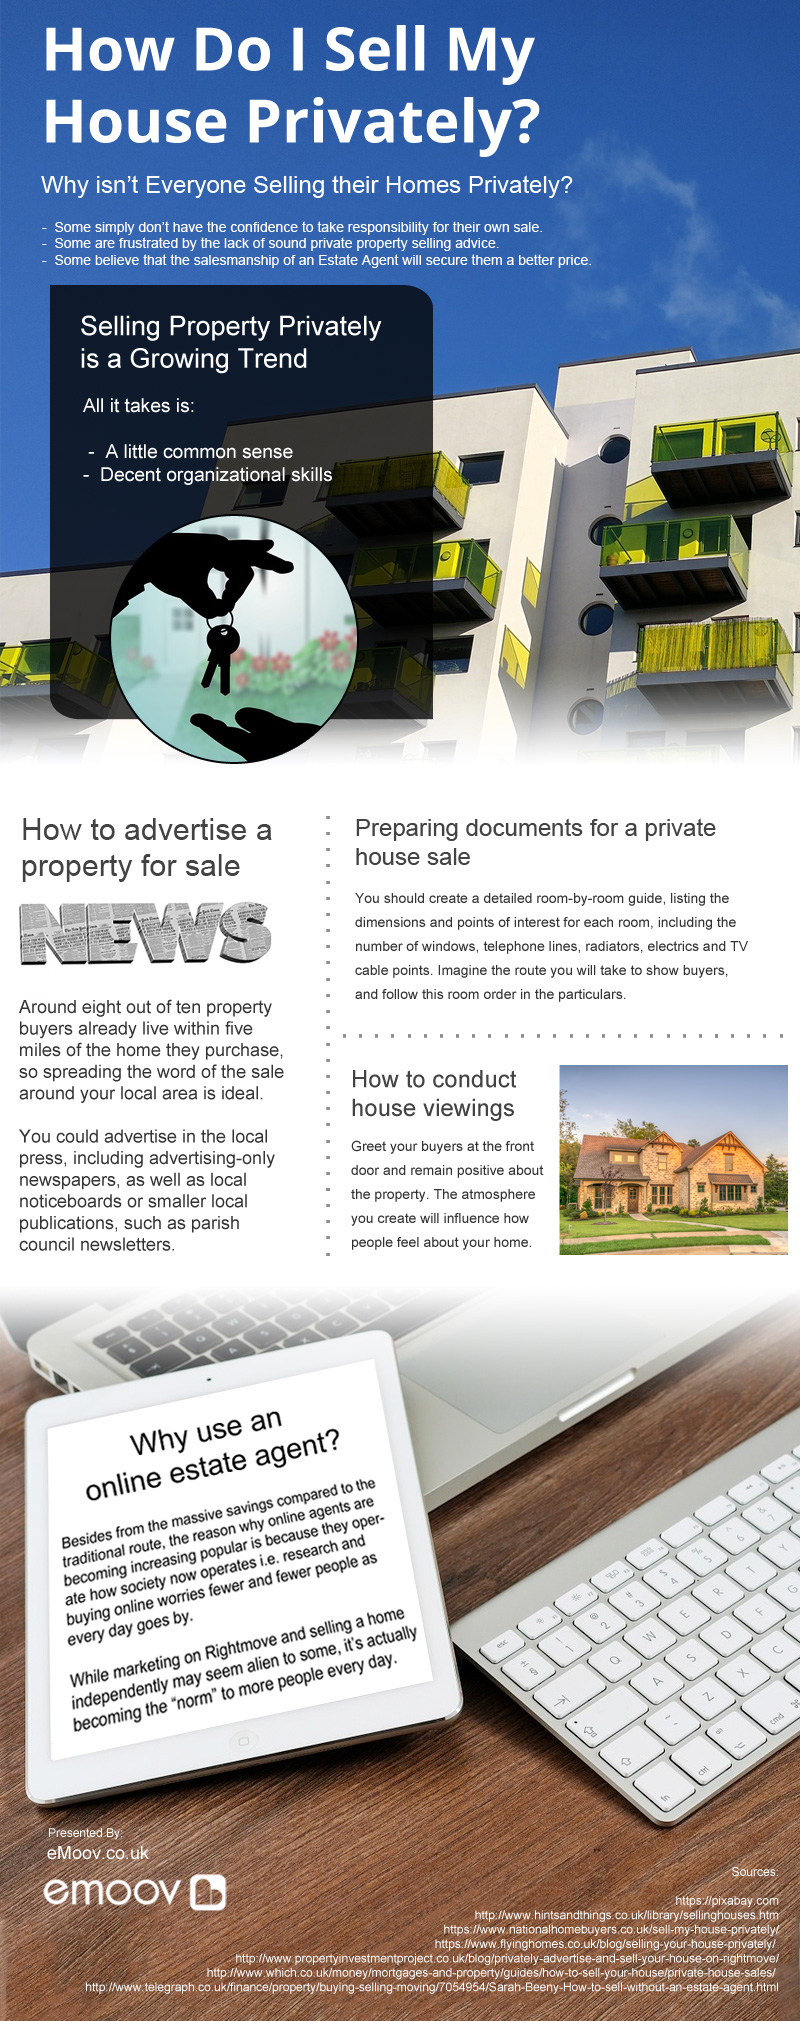 Here's How You Can Sell Your House Privately - Infographic